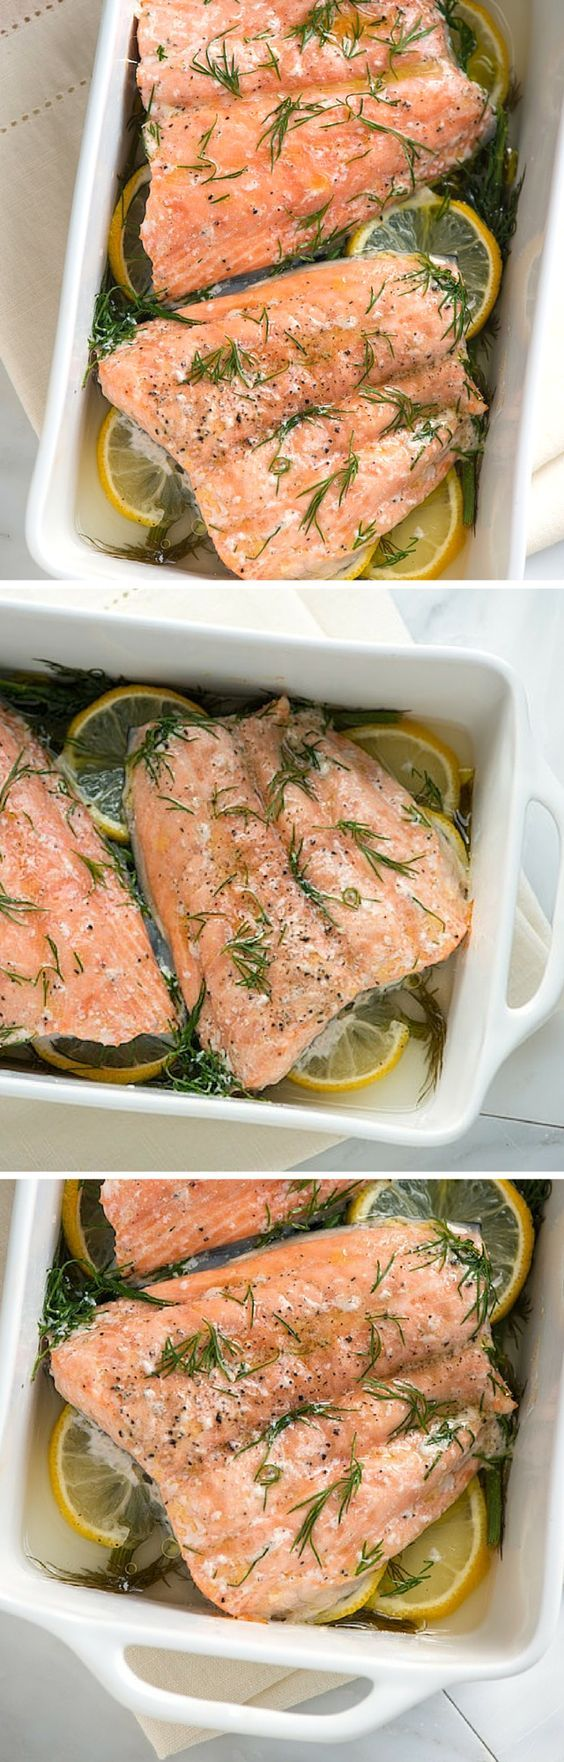 Baked Salmon Recipe with fresh lemon and dill - This is one of our favorite ways to cook salmon! Find the recipe on inspiredtaste.net